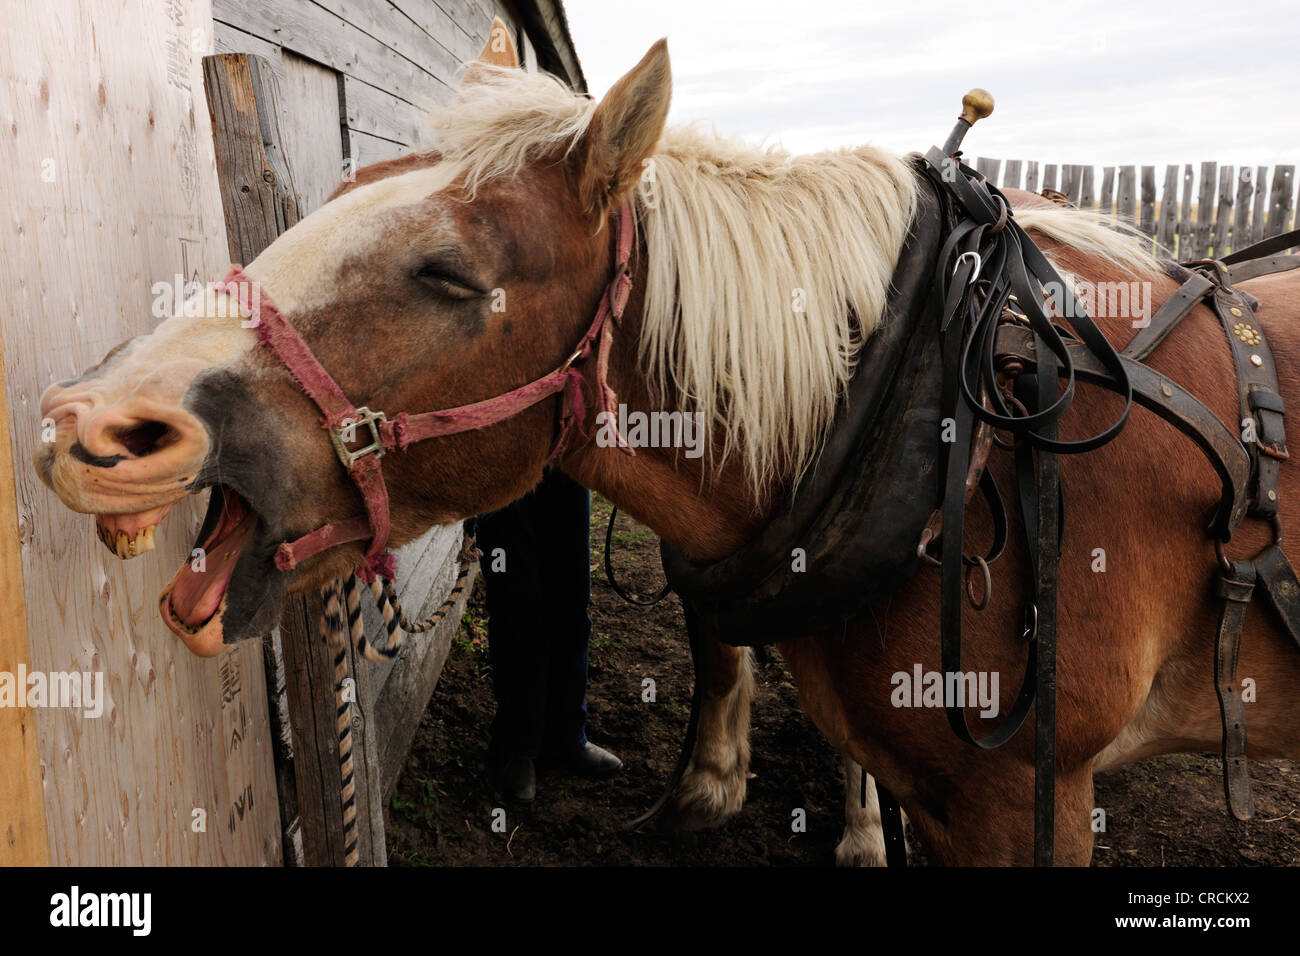 Horse with wide open mouth is put to a cart, Saskatchewan, Canada, North America - Stock Image